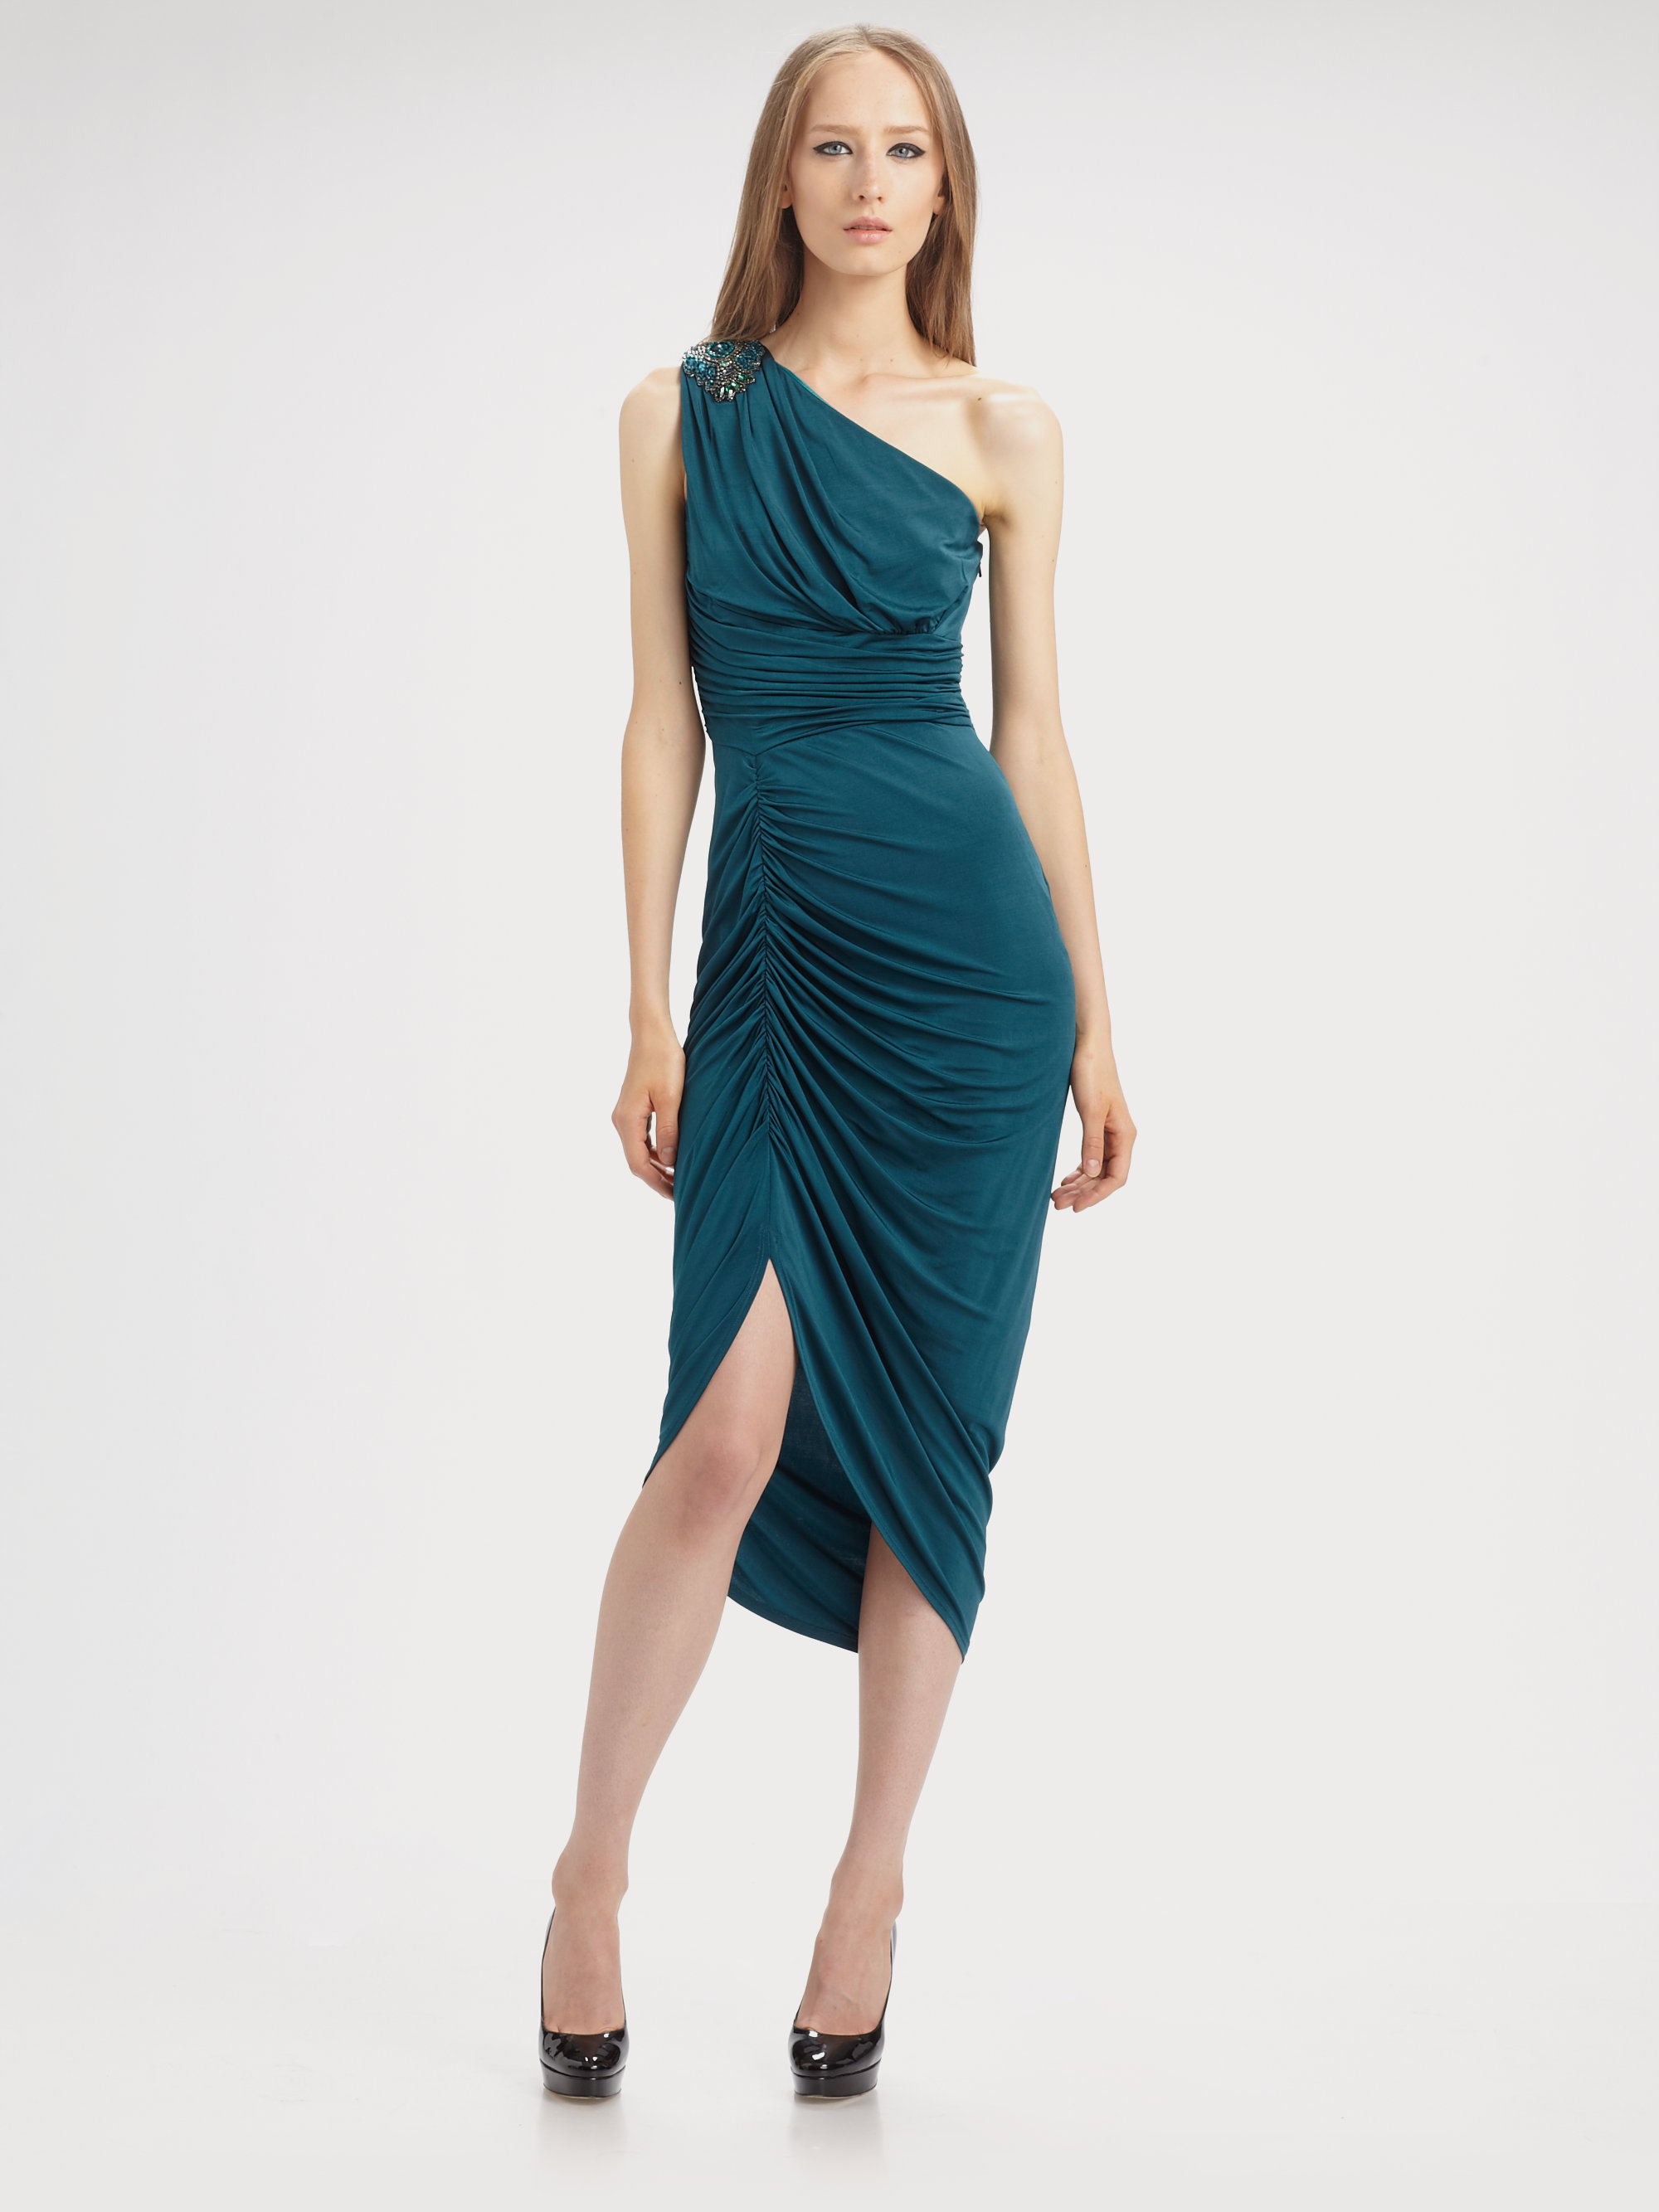 Teal One Strap Dress